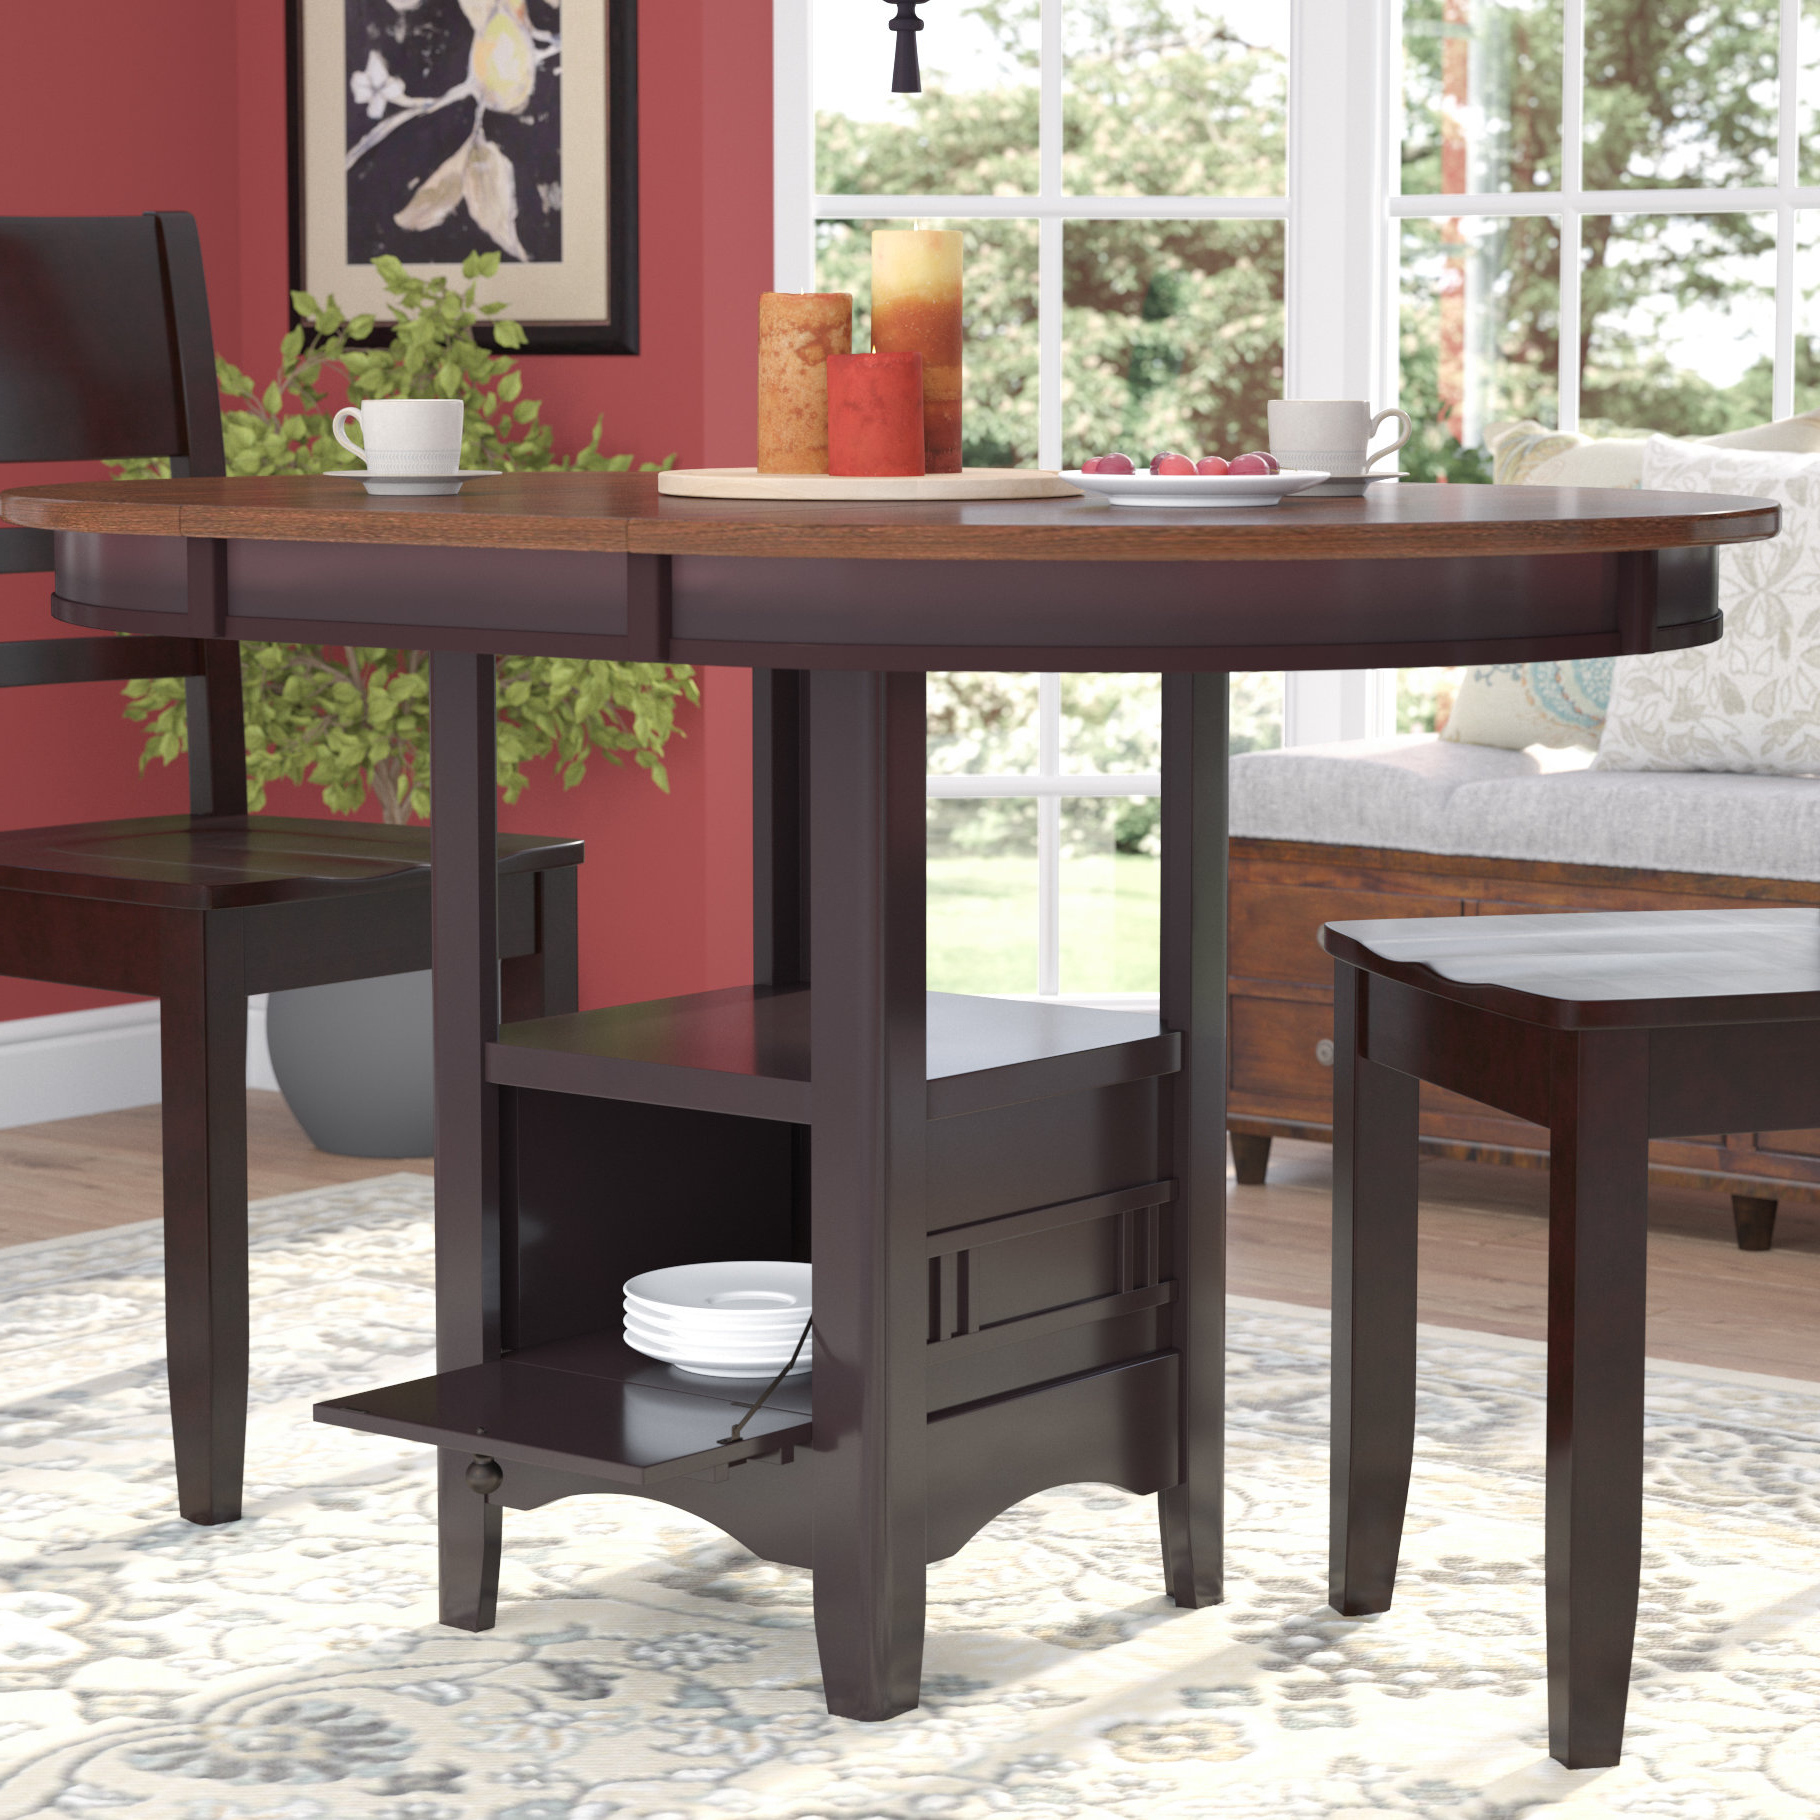 Anette 3 Piece Counter Height Dining Sets Throughout Widely Used Darby Home Co Sinkler Counter Height Drop Leaf Dining Table (View 8 of 25)